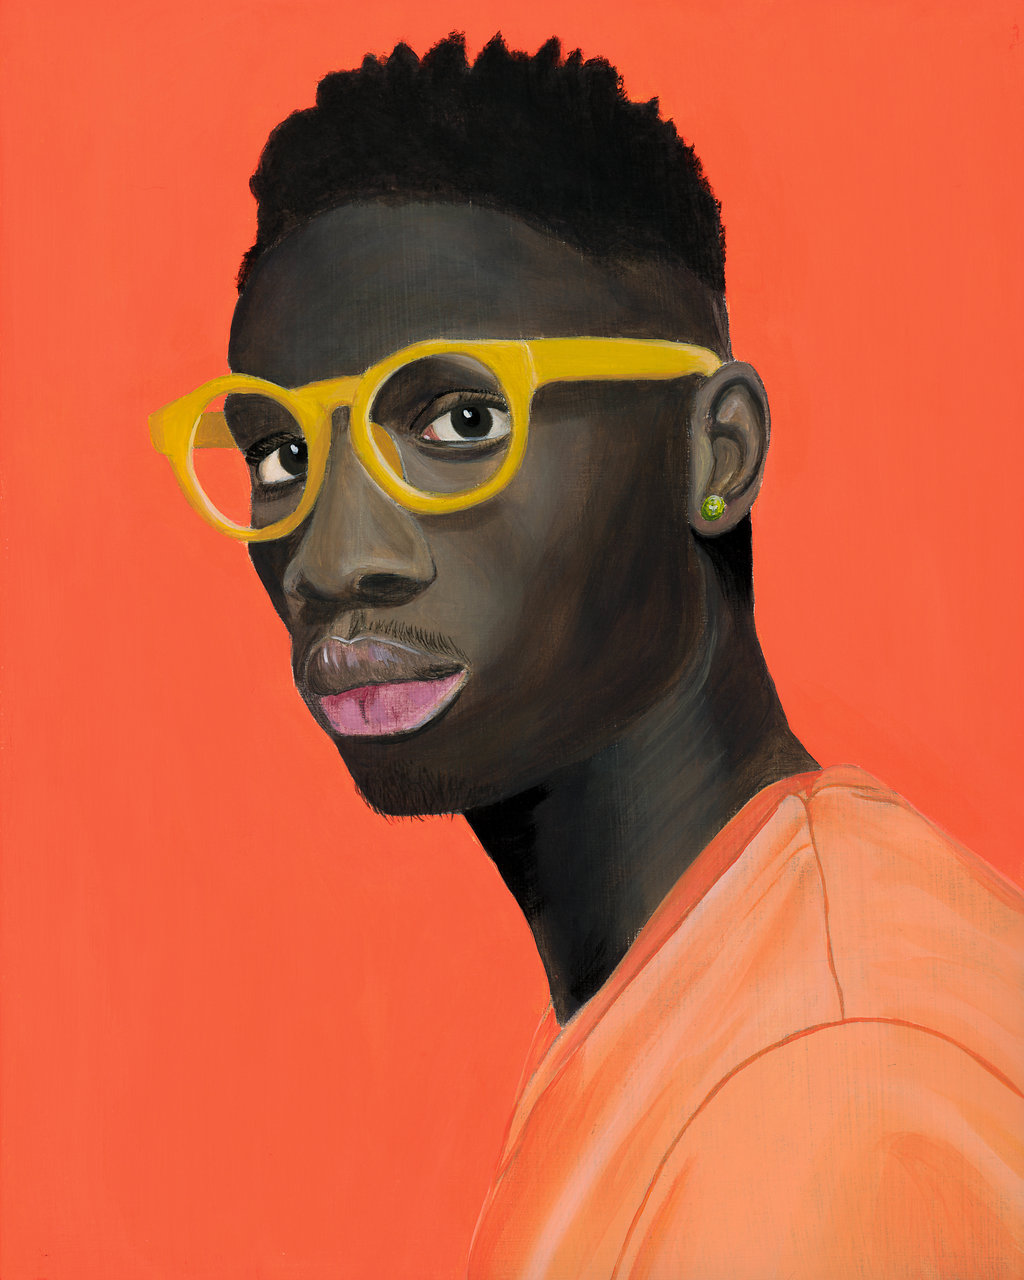 black man man yellow glasses- Curious Darling - J Danielle Wehunt